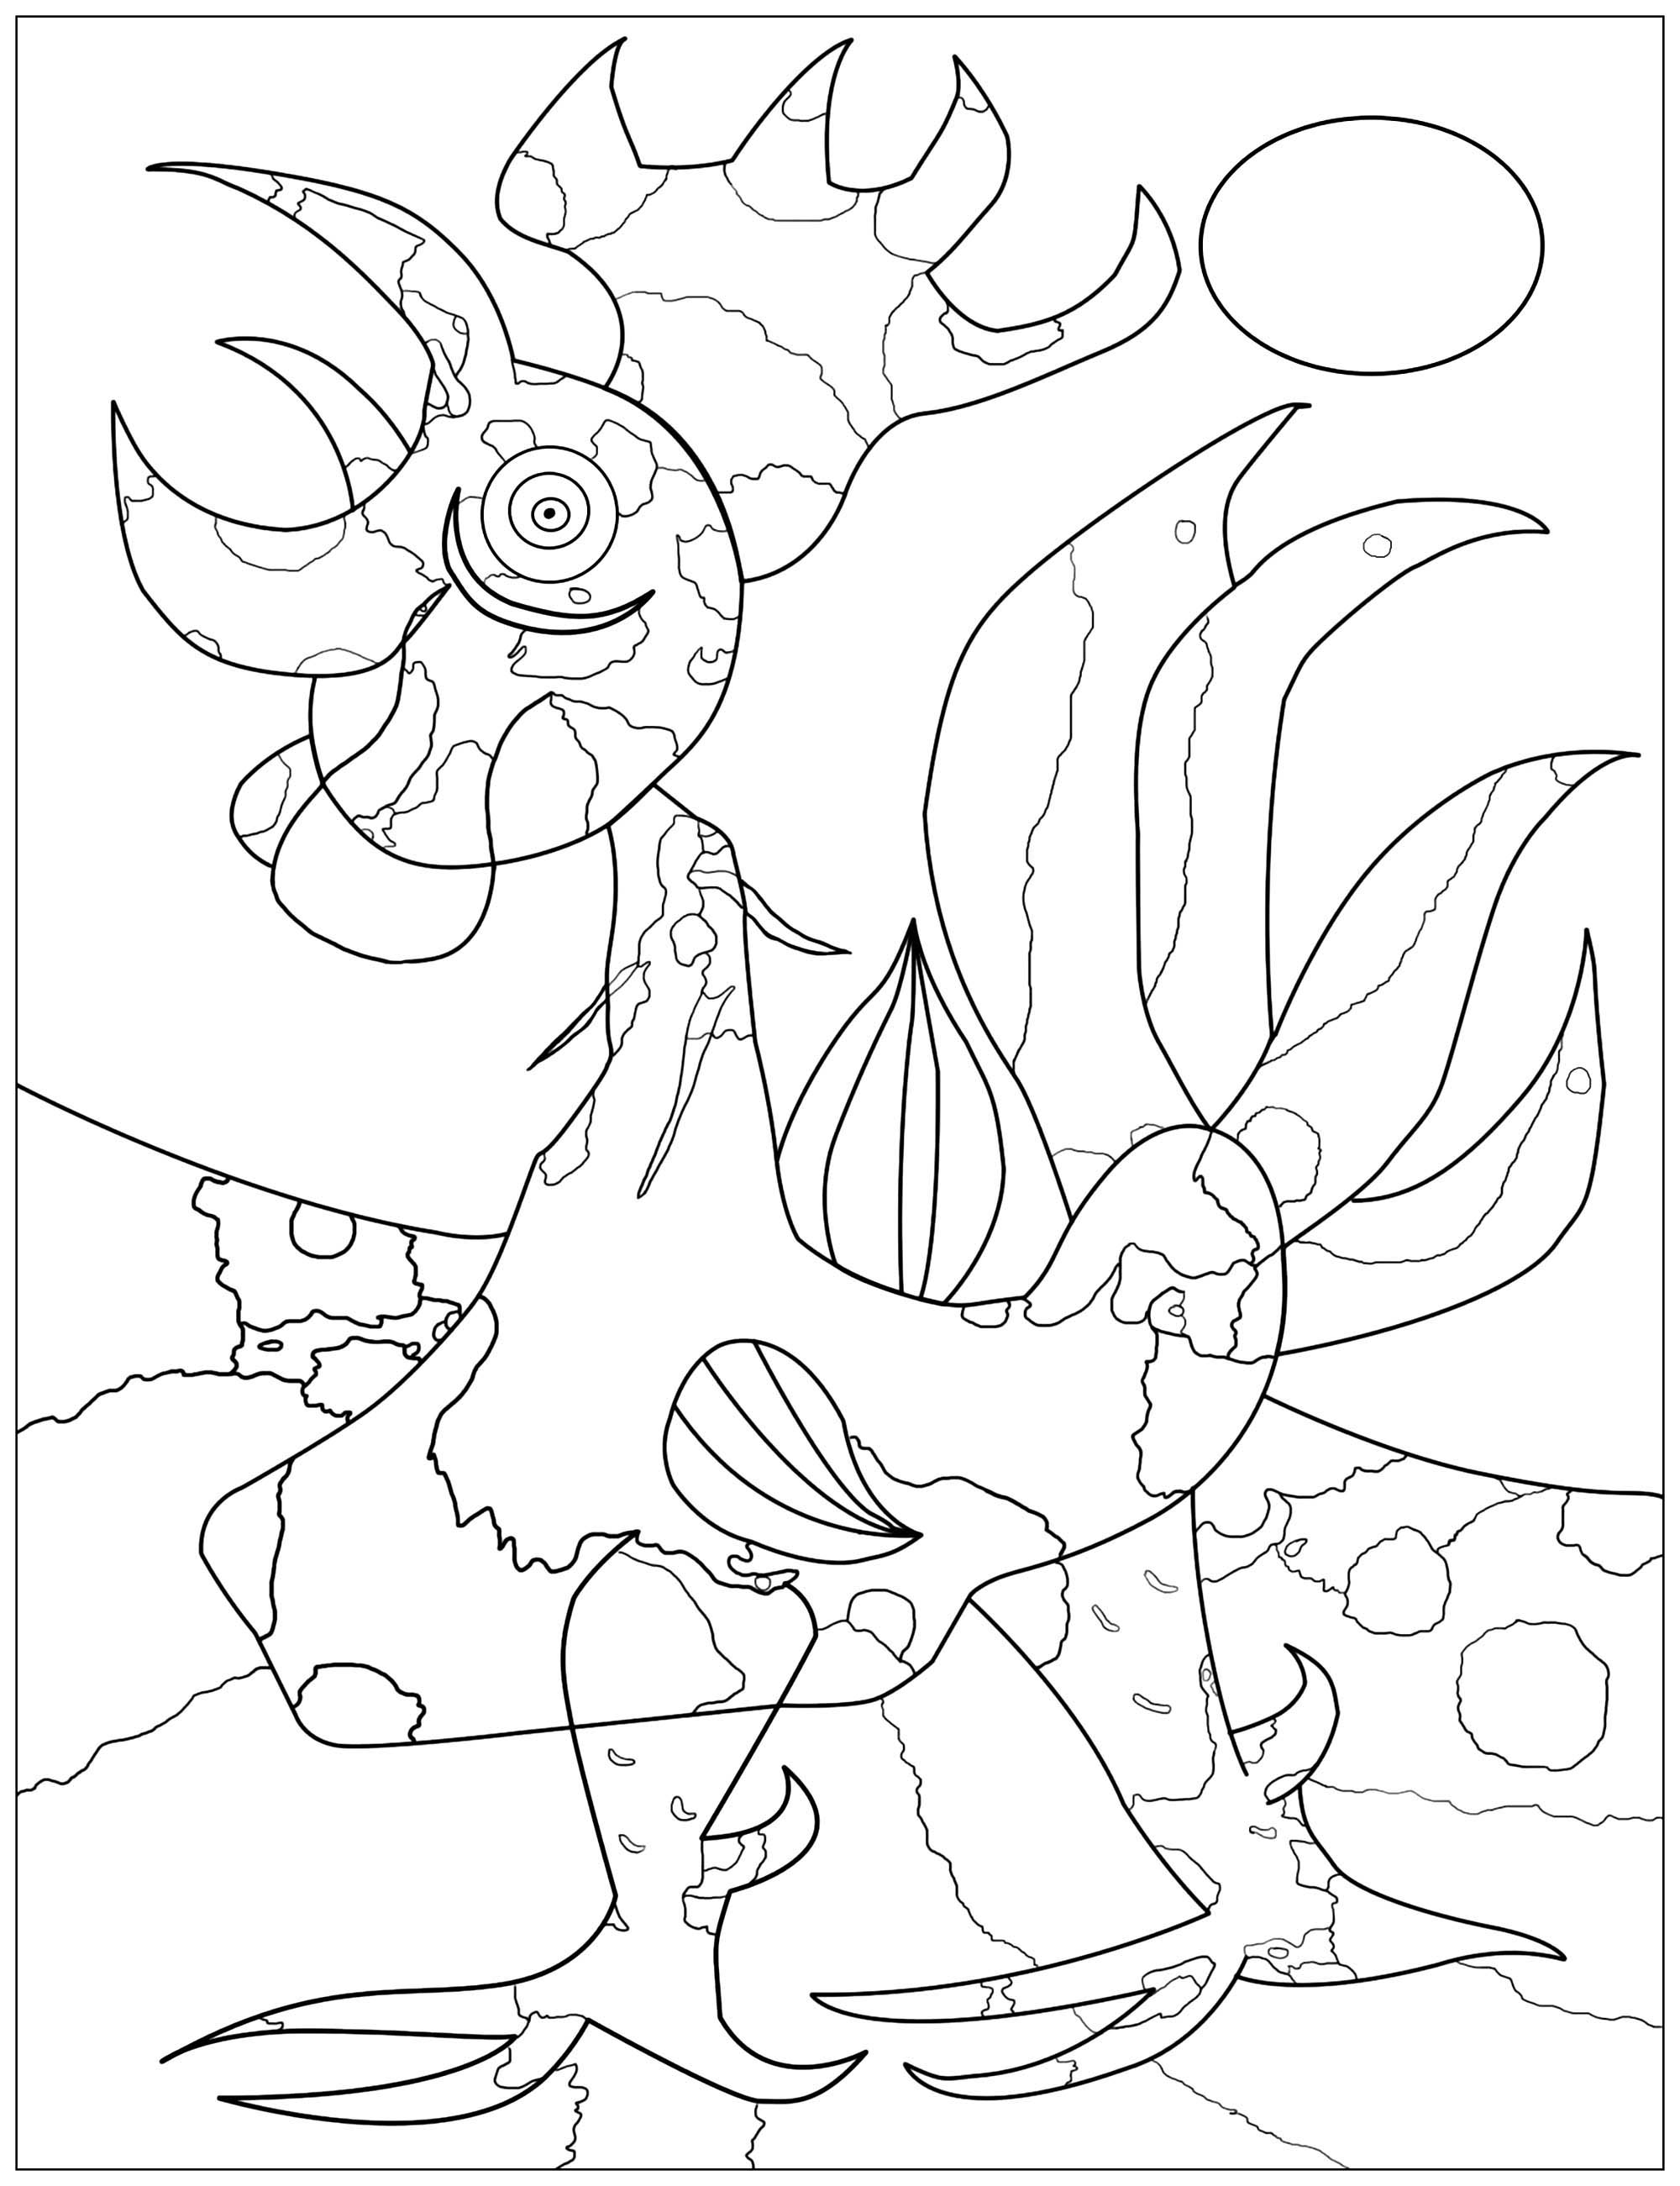 Coloring page inspired by a Joan Miró painting : Le coq (The rooster) (1940)